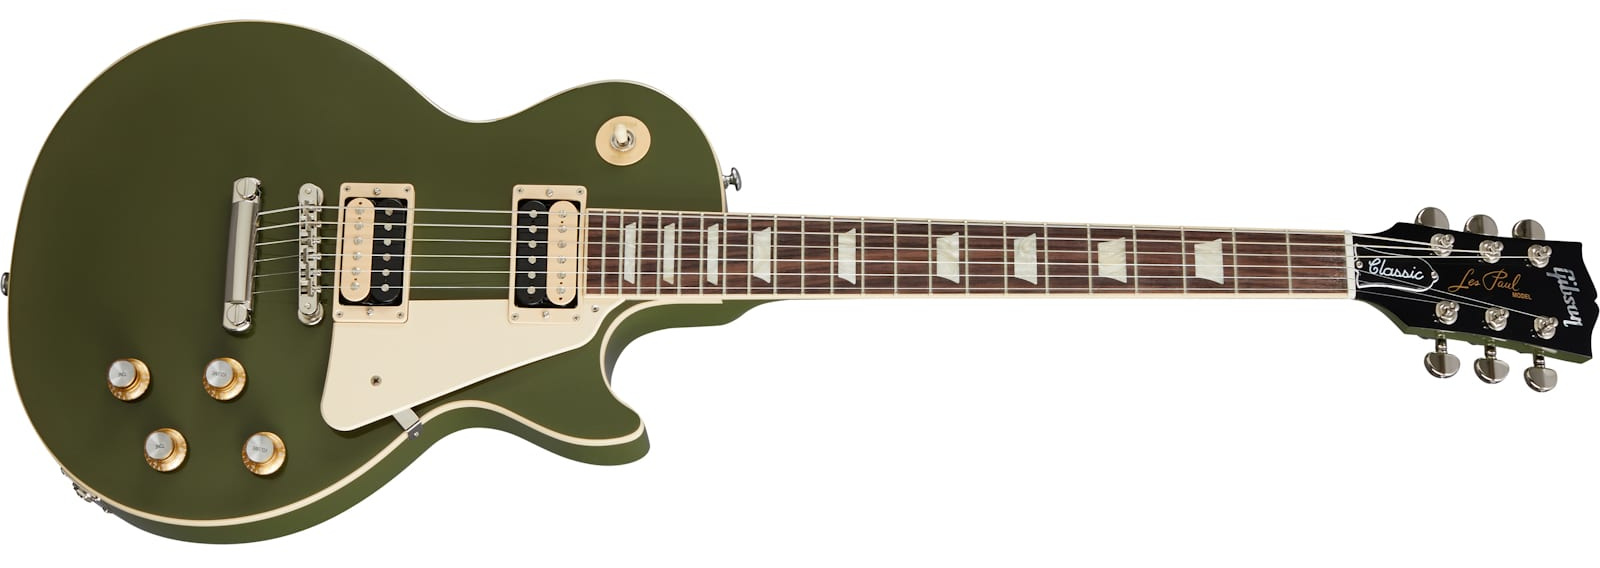 Gibson Olive Drab Les Paul Classic